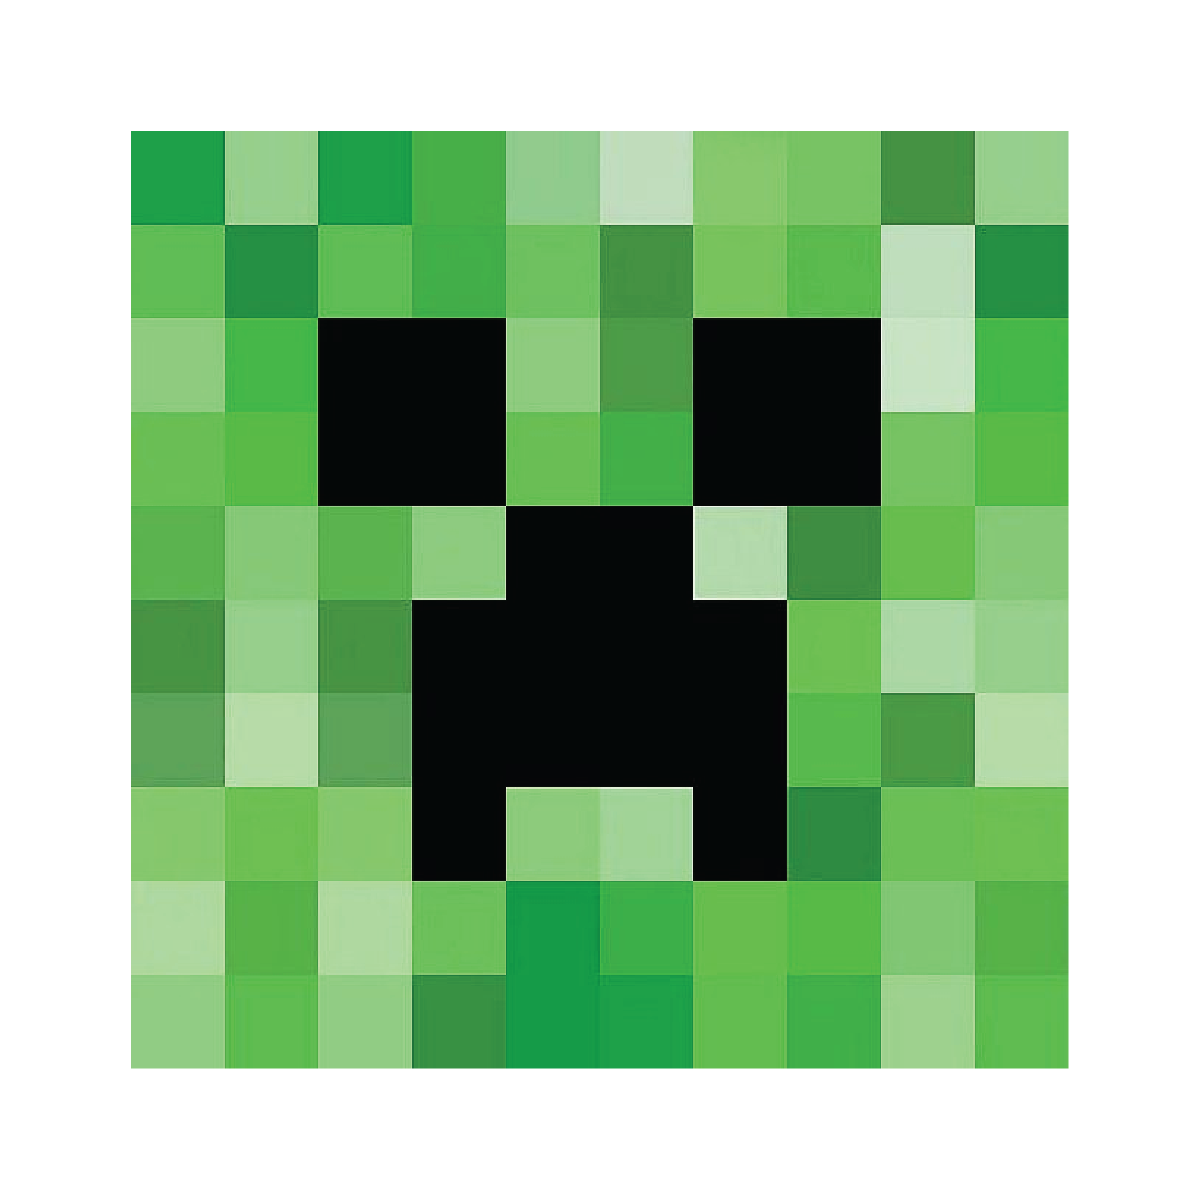 Minecraft Zombie additionally Minecraft Mutant Zombie besides ...